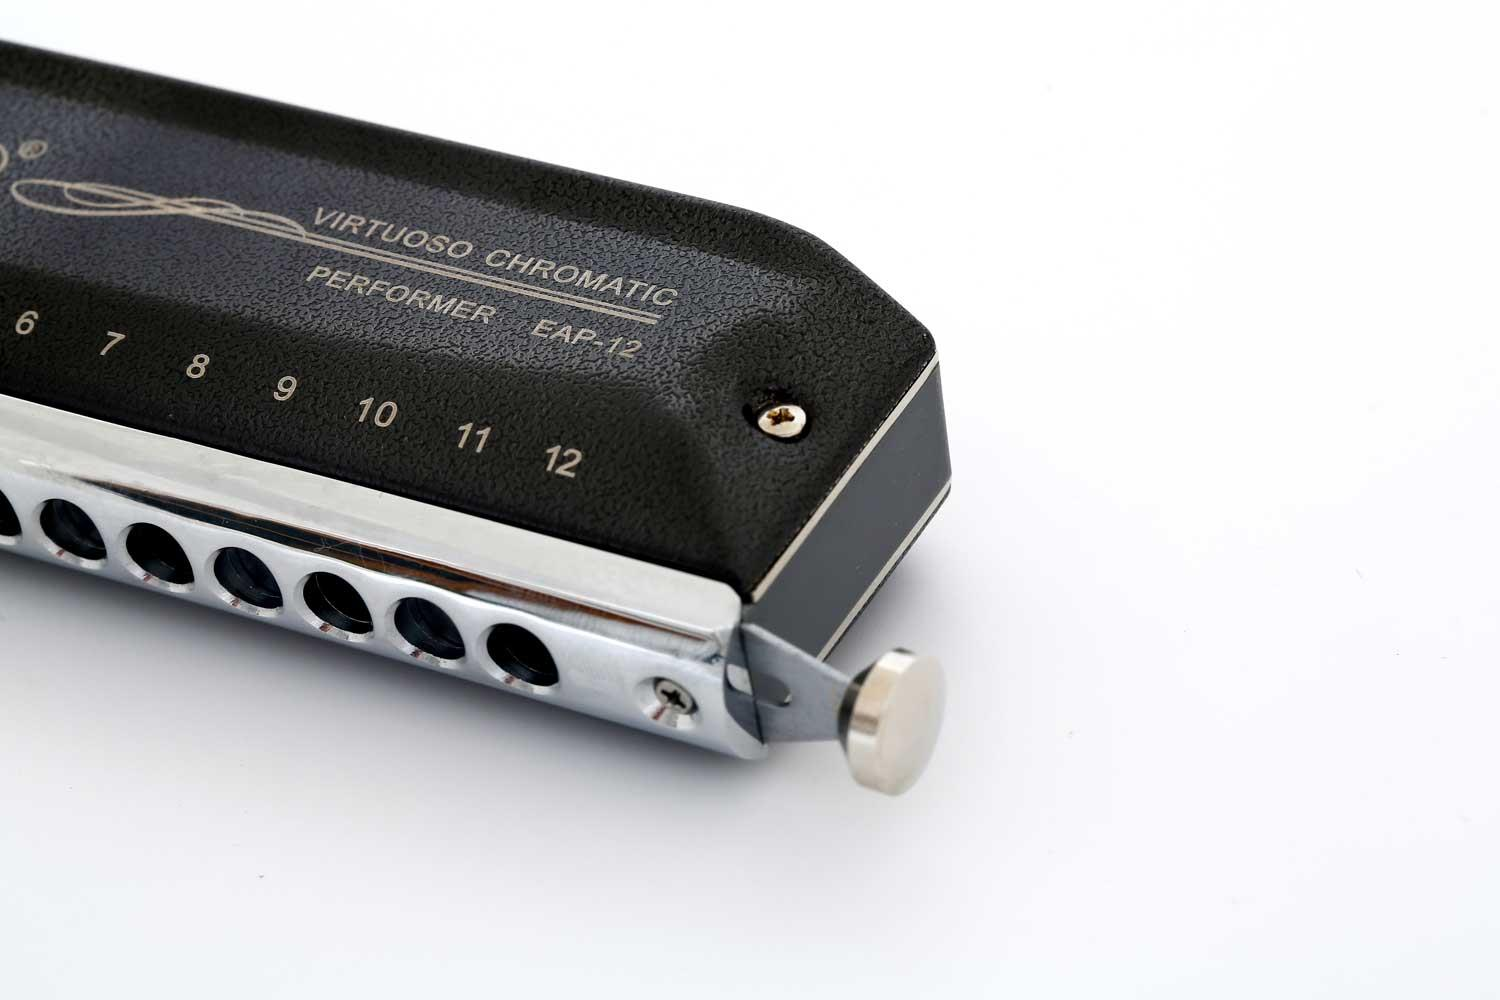 Easttop Chromatic Harmonica - EAP-12 right side